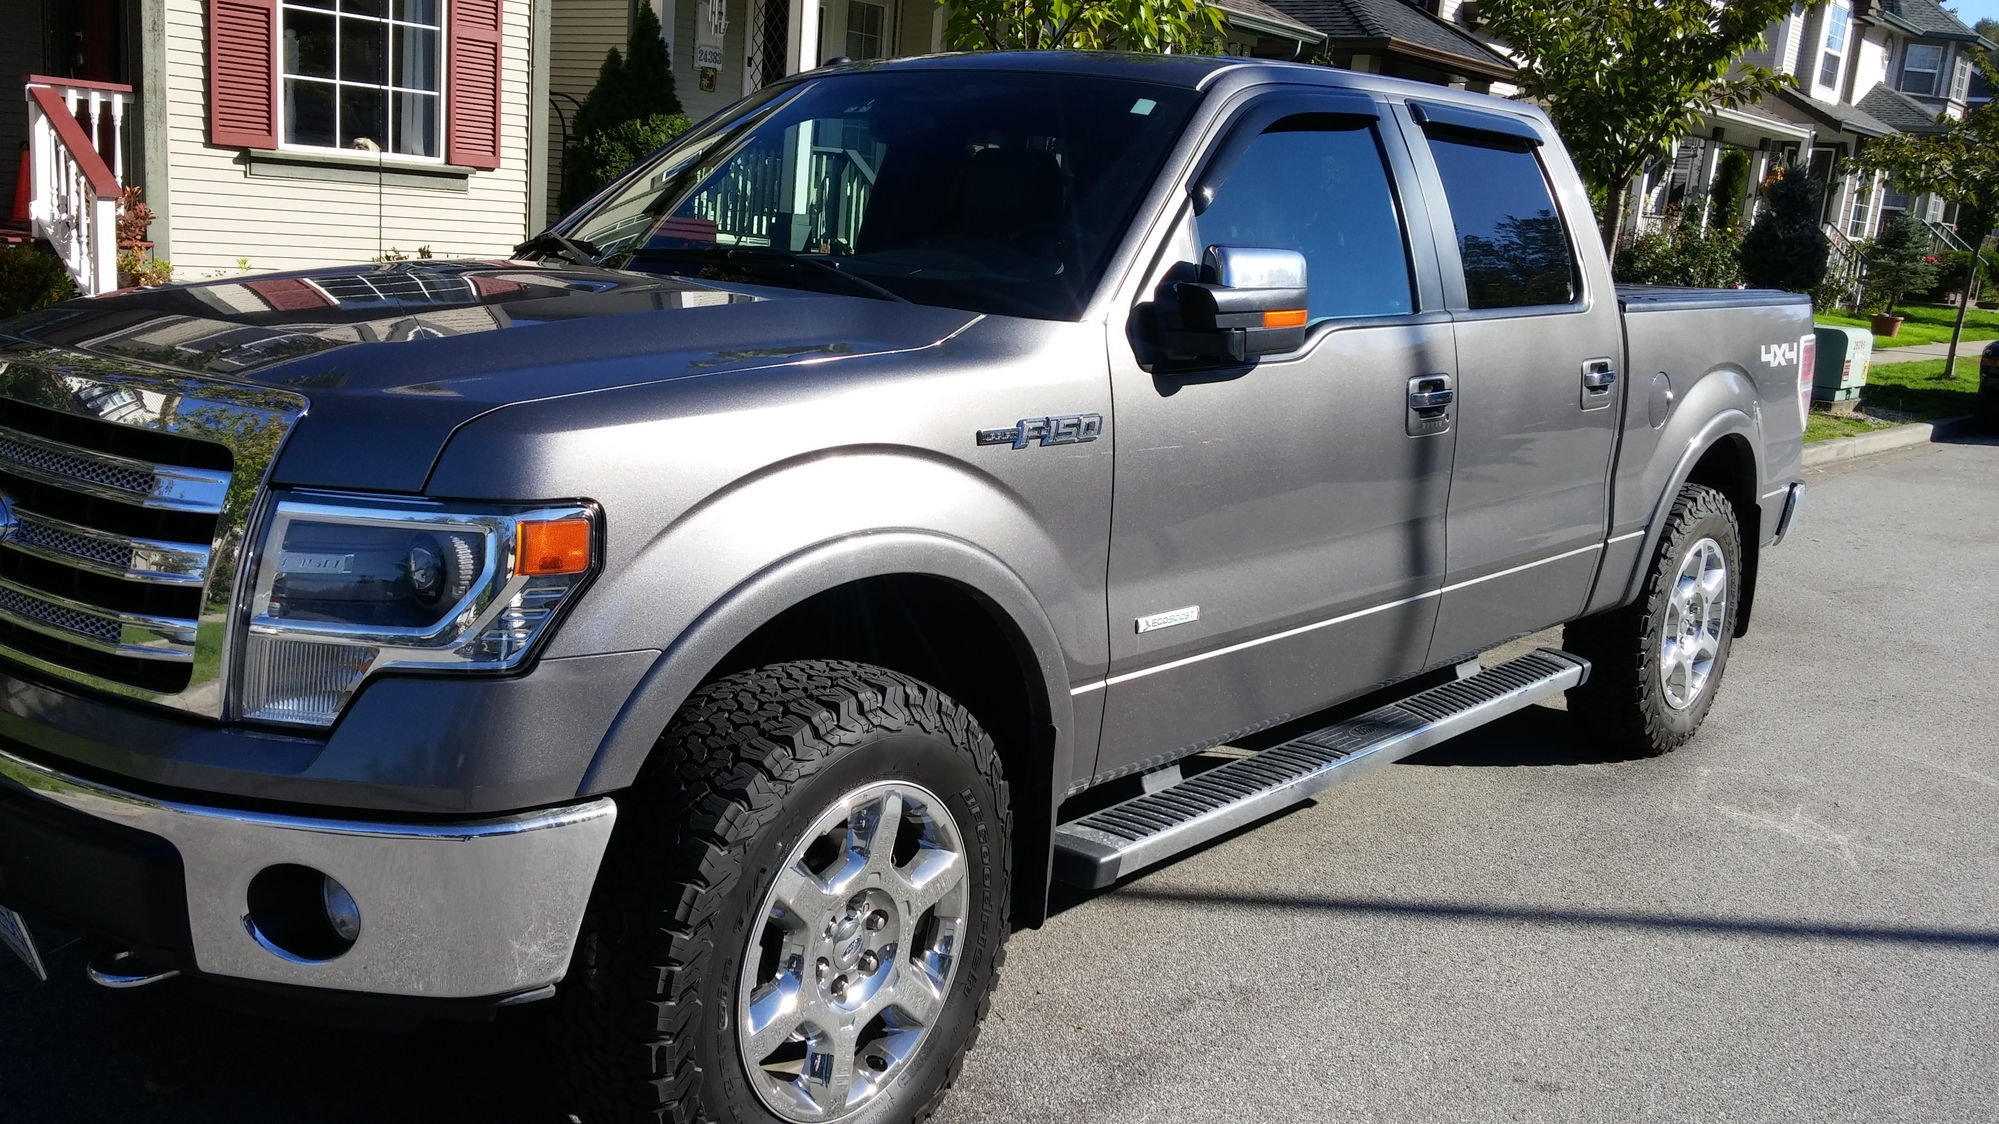 Wheels Tires Ford F Forum Community Of F Rims And Tires F Inch Tires